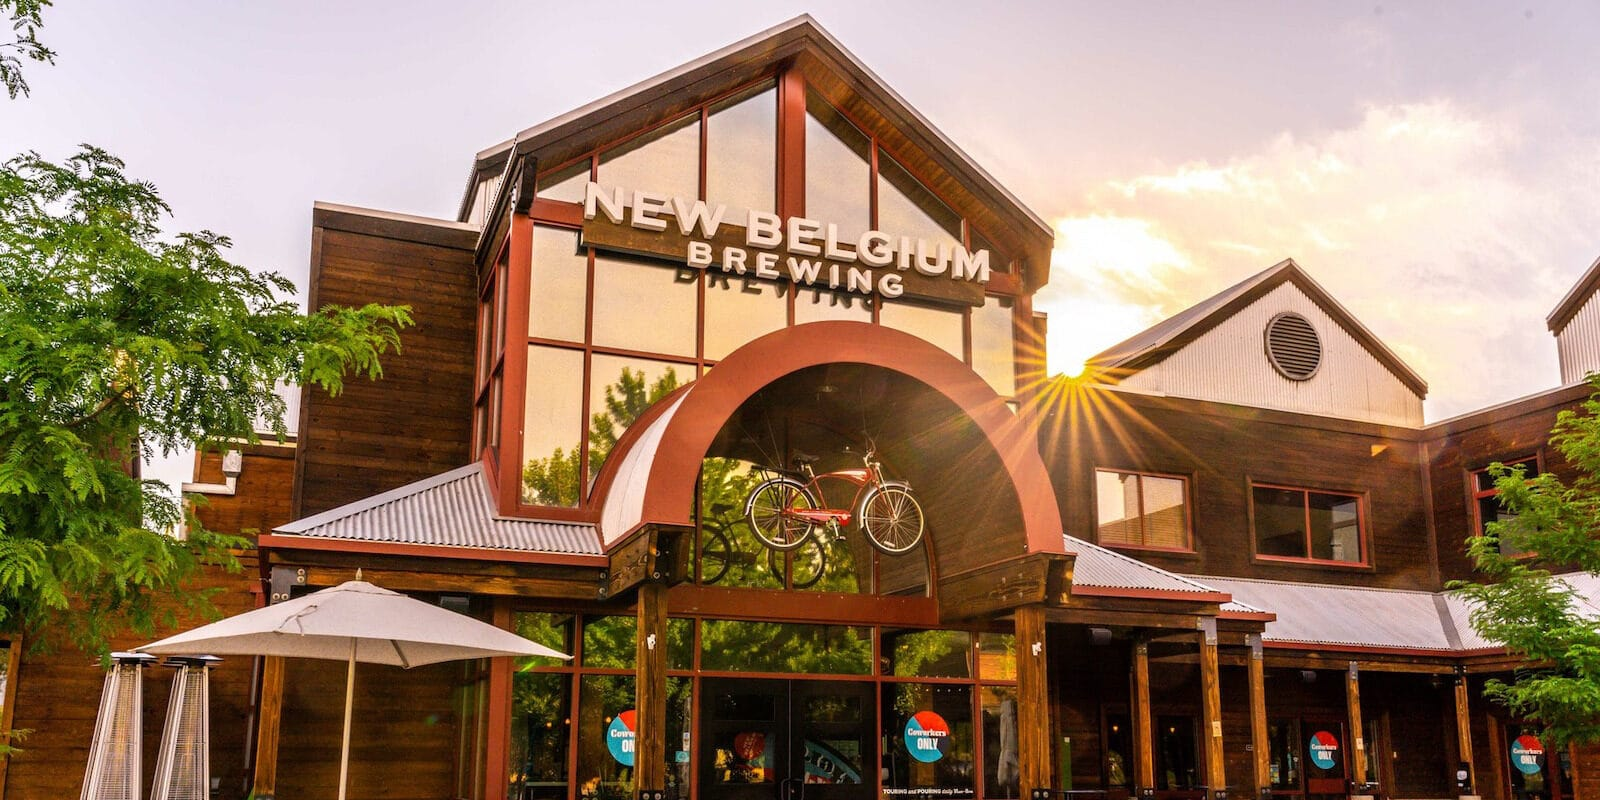 Image of the entrance to New Belgium Brewery